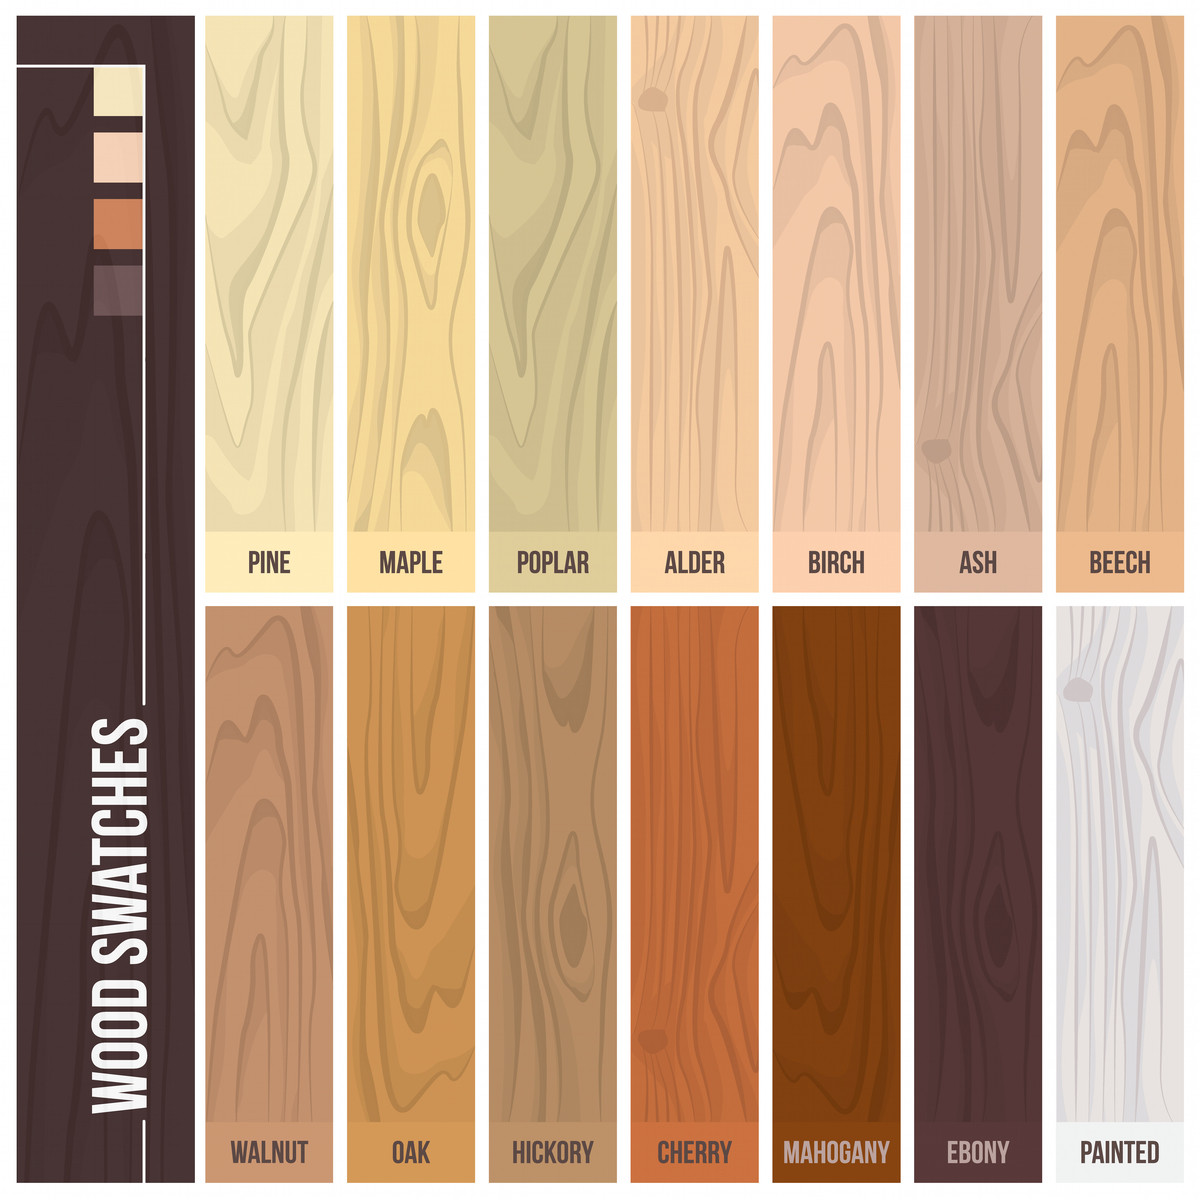 3 Inch Engineered Hardwood Flooring Of 12 Types Of Hardwood Flooring Species Styles Edging Dimensions Inside Types Of Hardwood Flooring Illustrated Guide